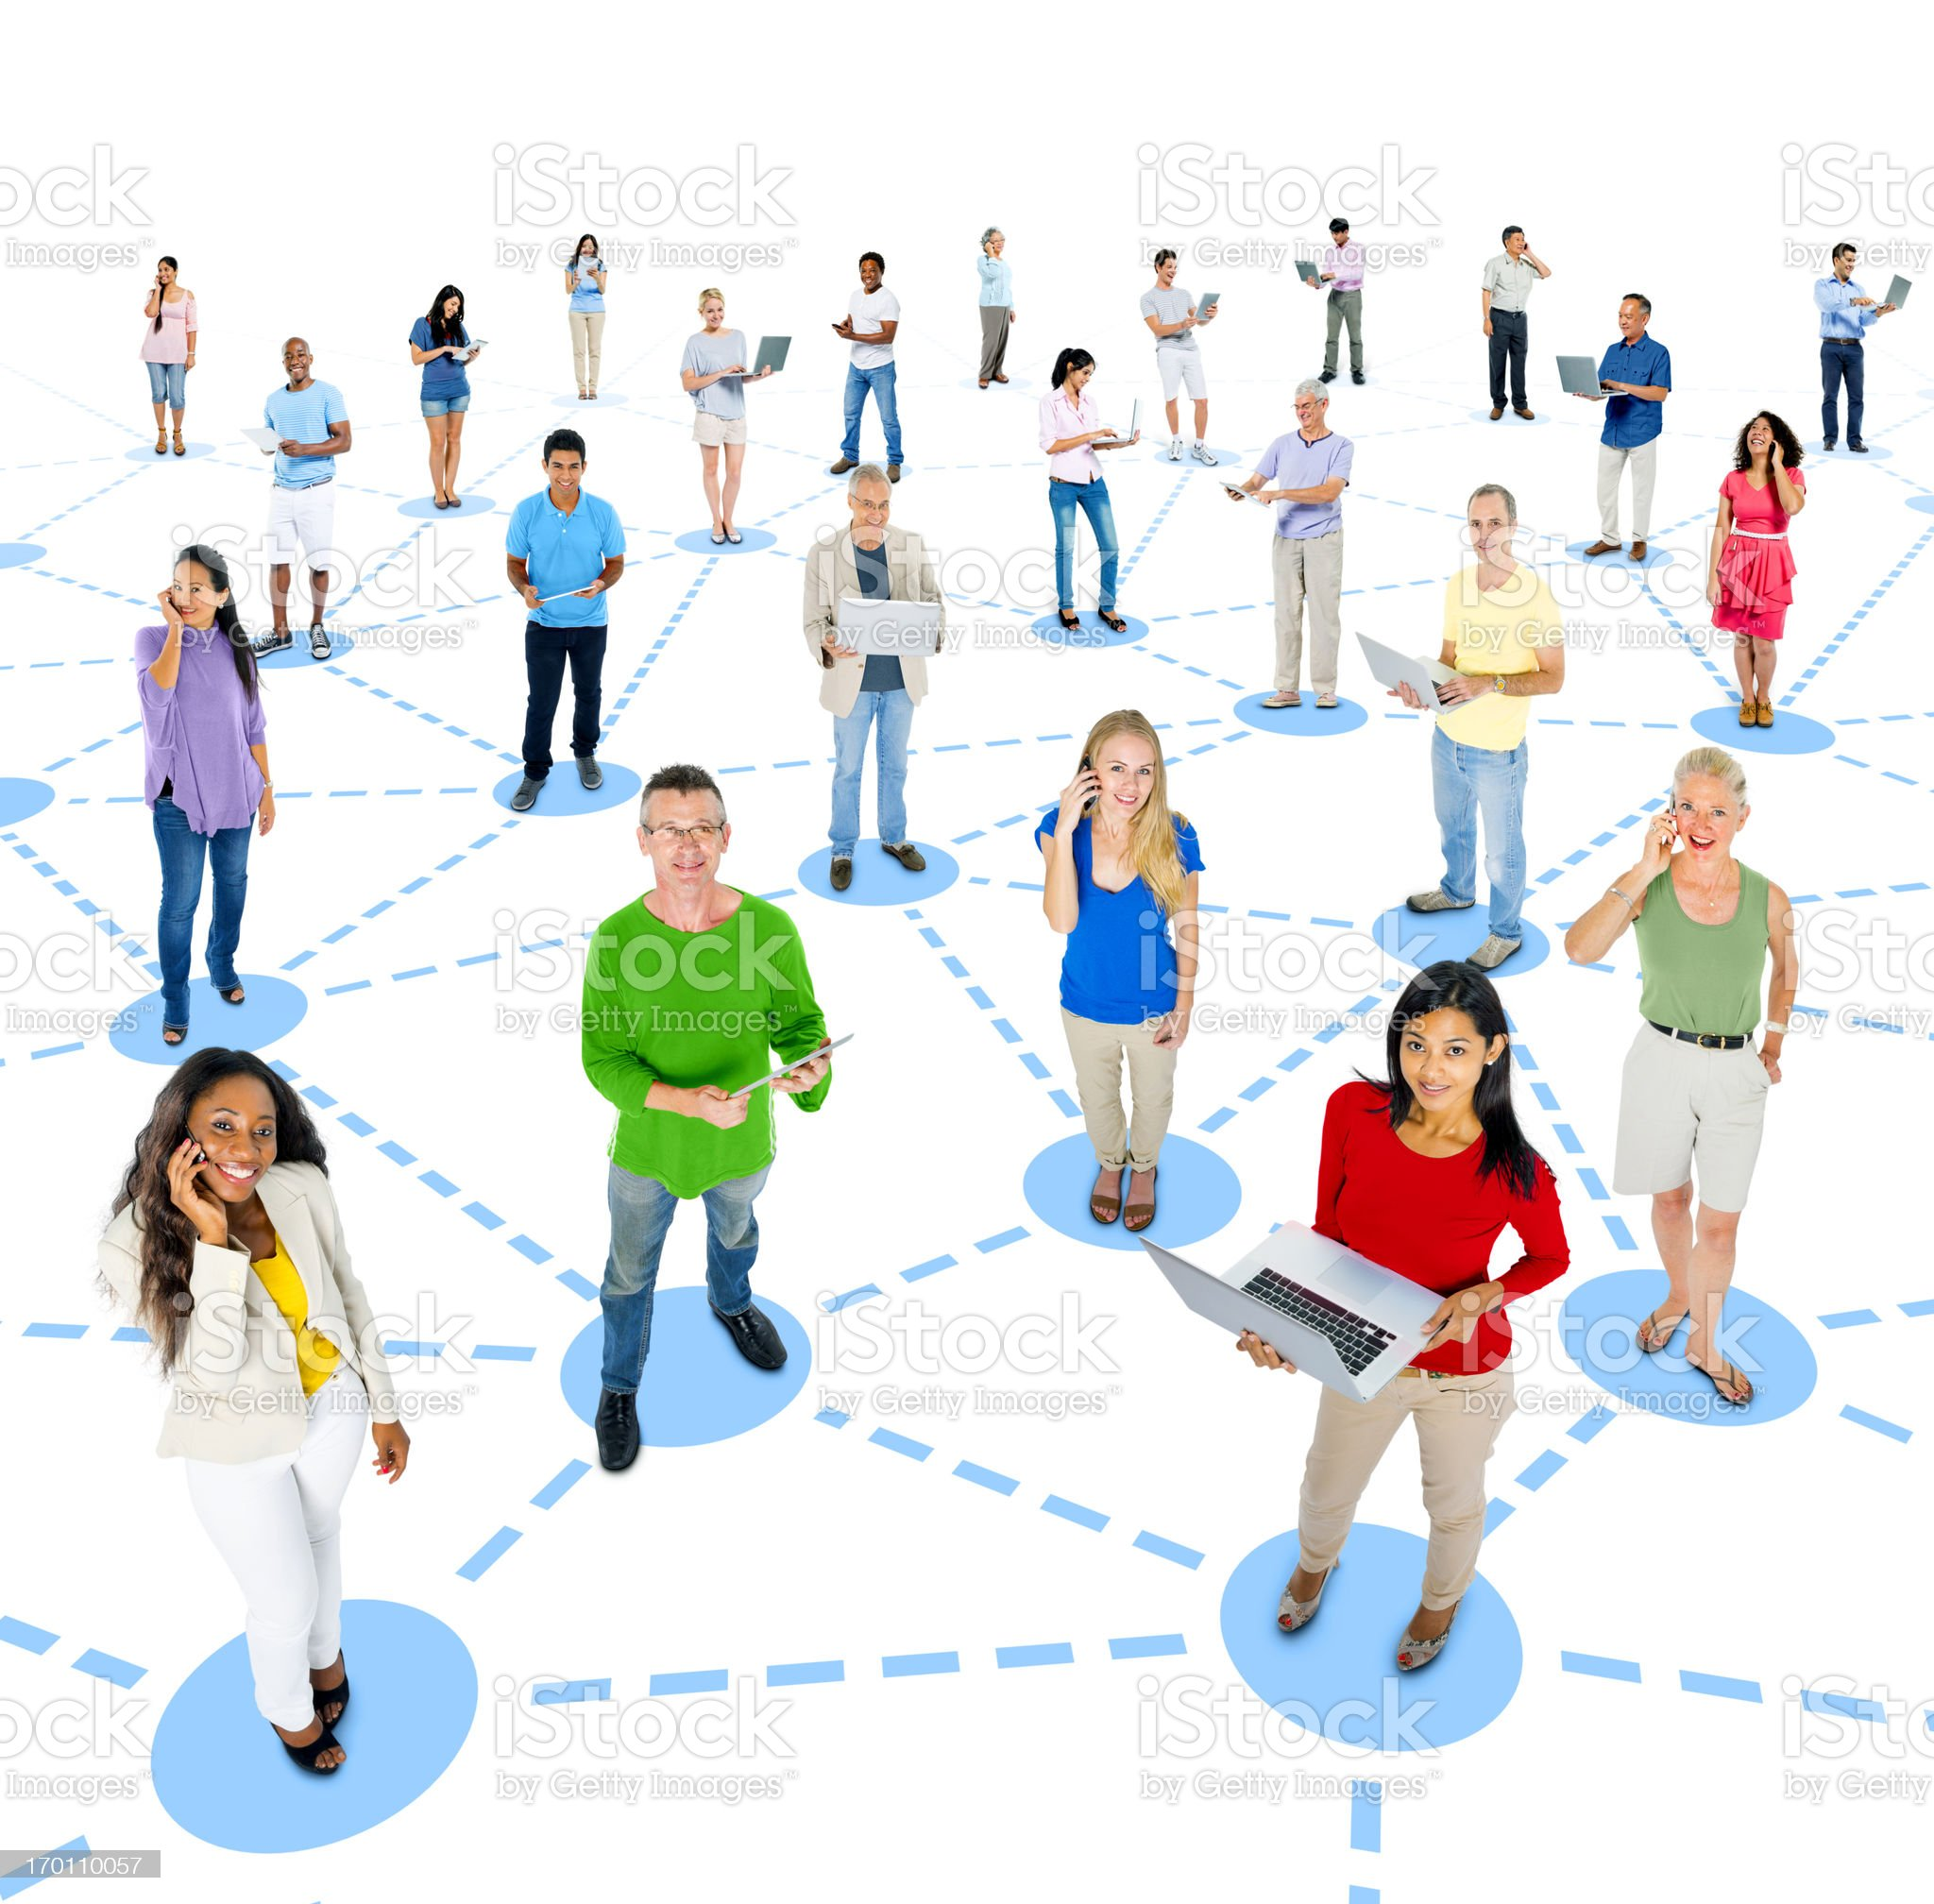 Group of people standing in blue circles to show connection  royalty-free stock photo